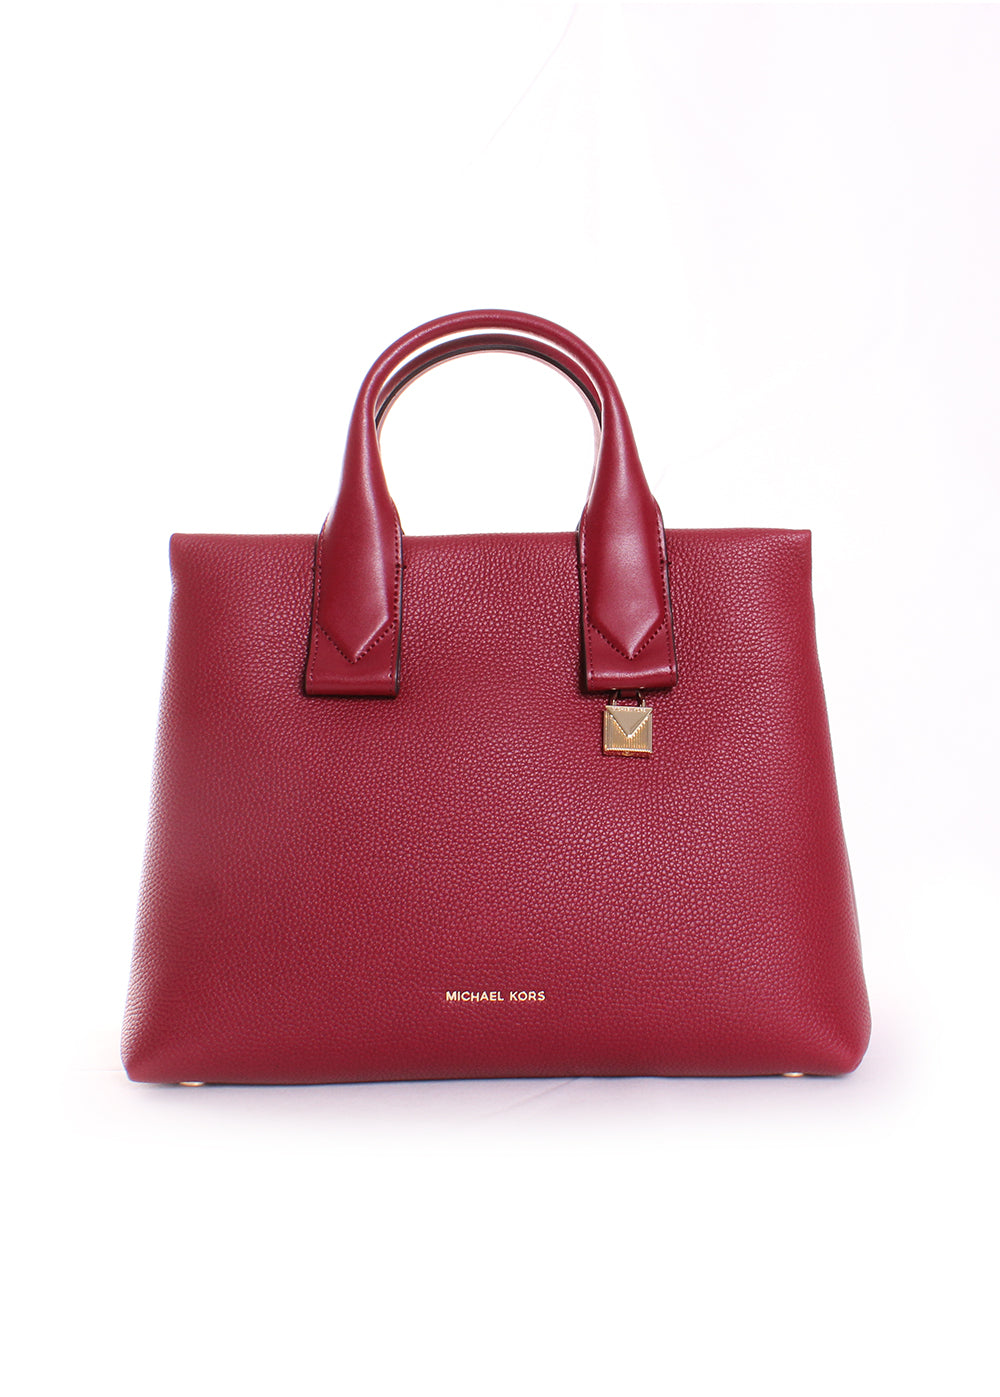 Michael Kors Rollins Large Pebbled Leather Satchel in Maroon